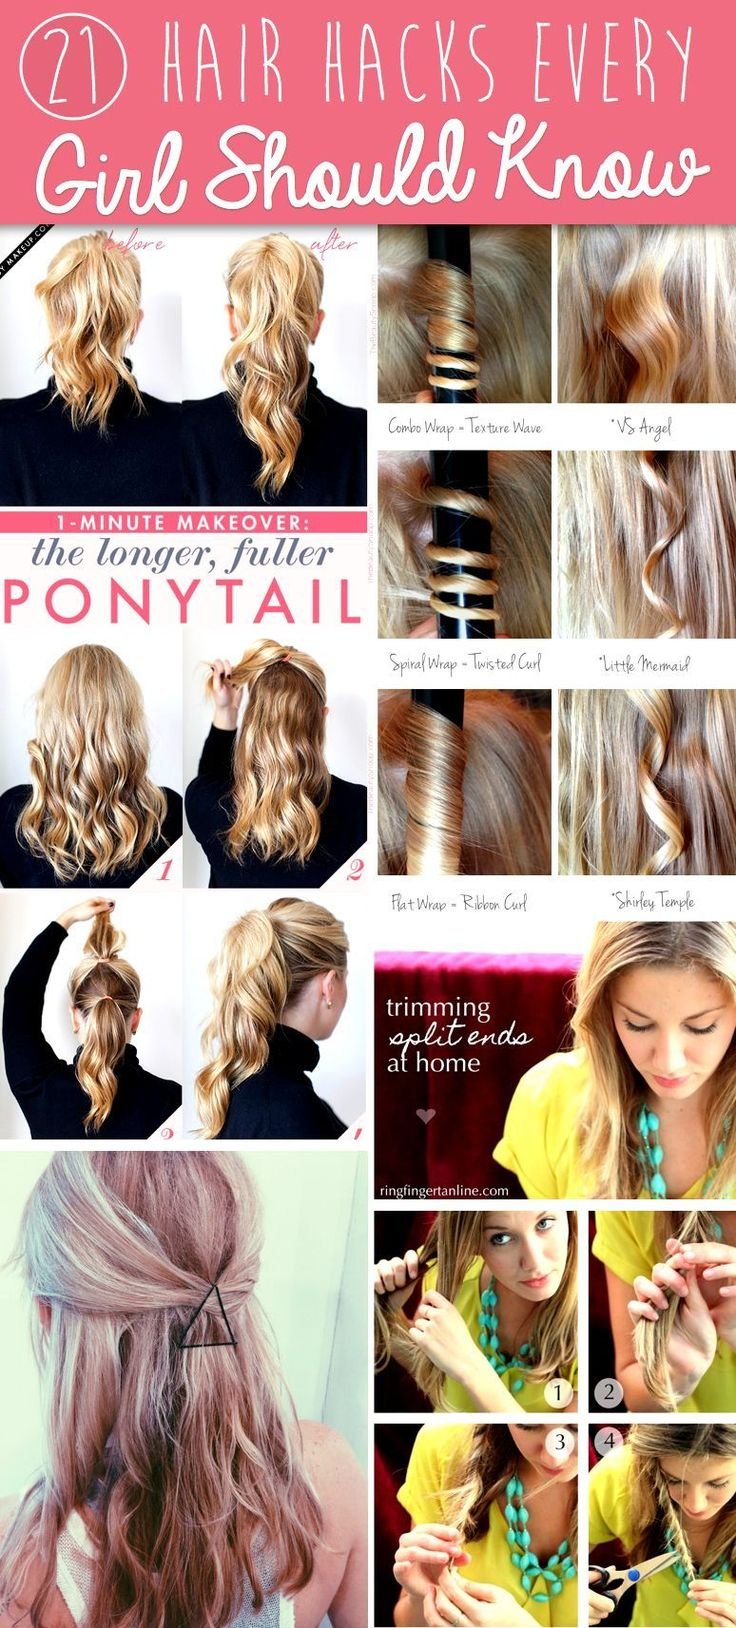 You NEED TO check out these 10 Easy Hair Care Tips and Hacks! I've already tried...